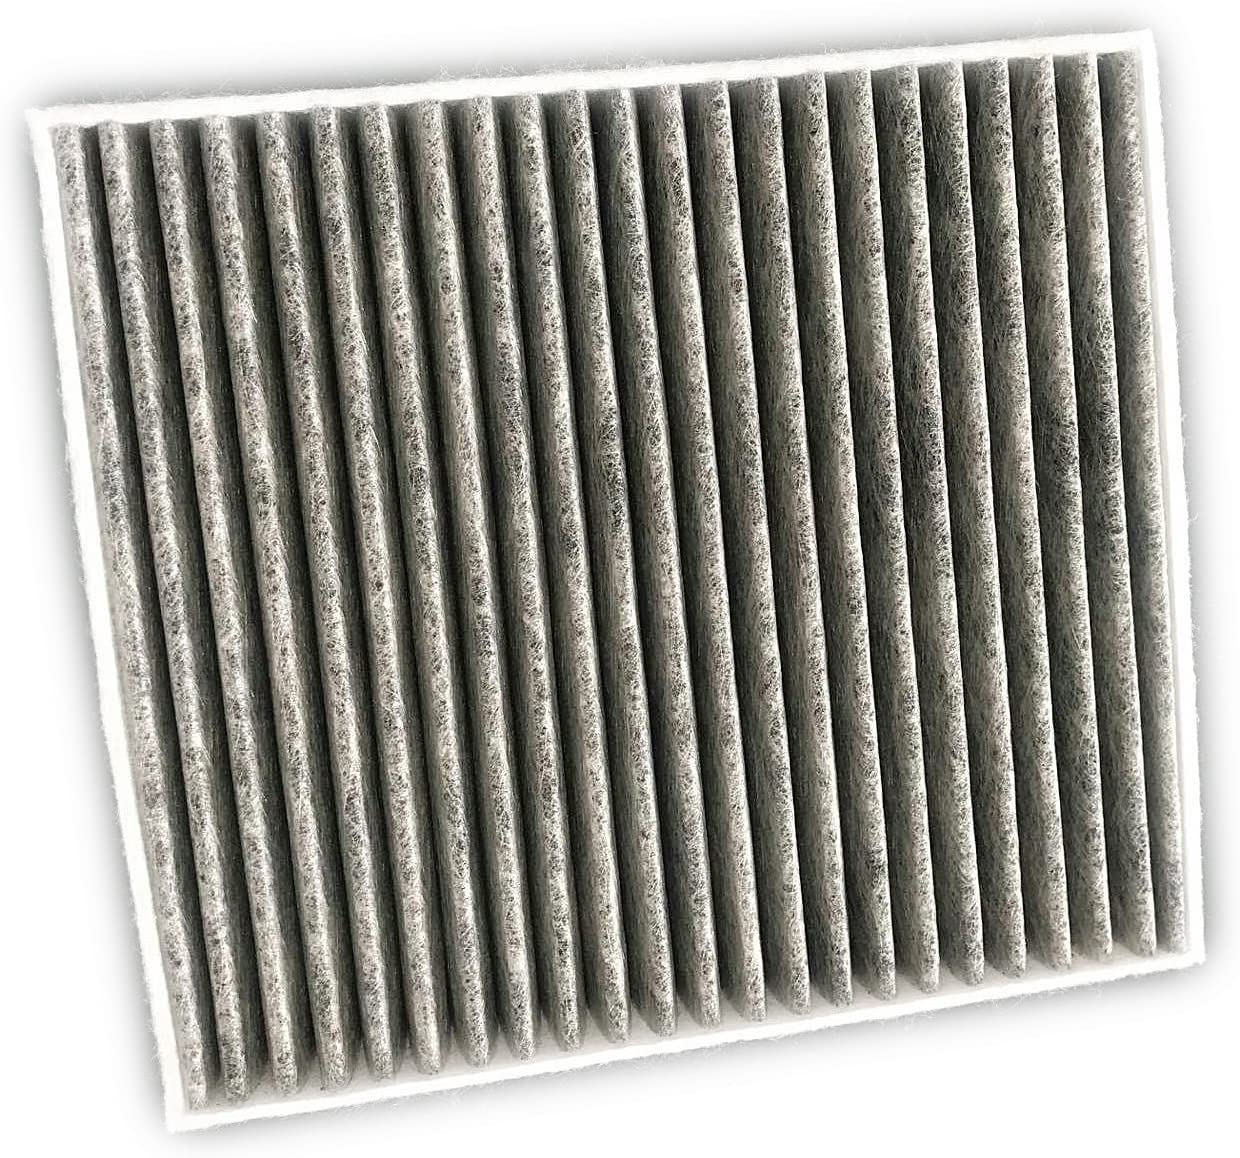 Double Carbon Cabin Air Filter For 16-18 Ram 1500 2500 3500 Smog Cleenaire CAF6831 The Most Advanced Protection Against Dust Odors and Allergens Gases